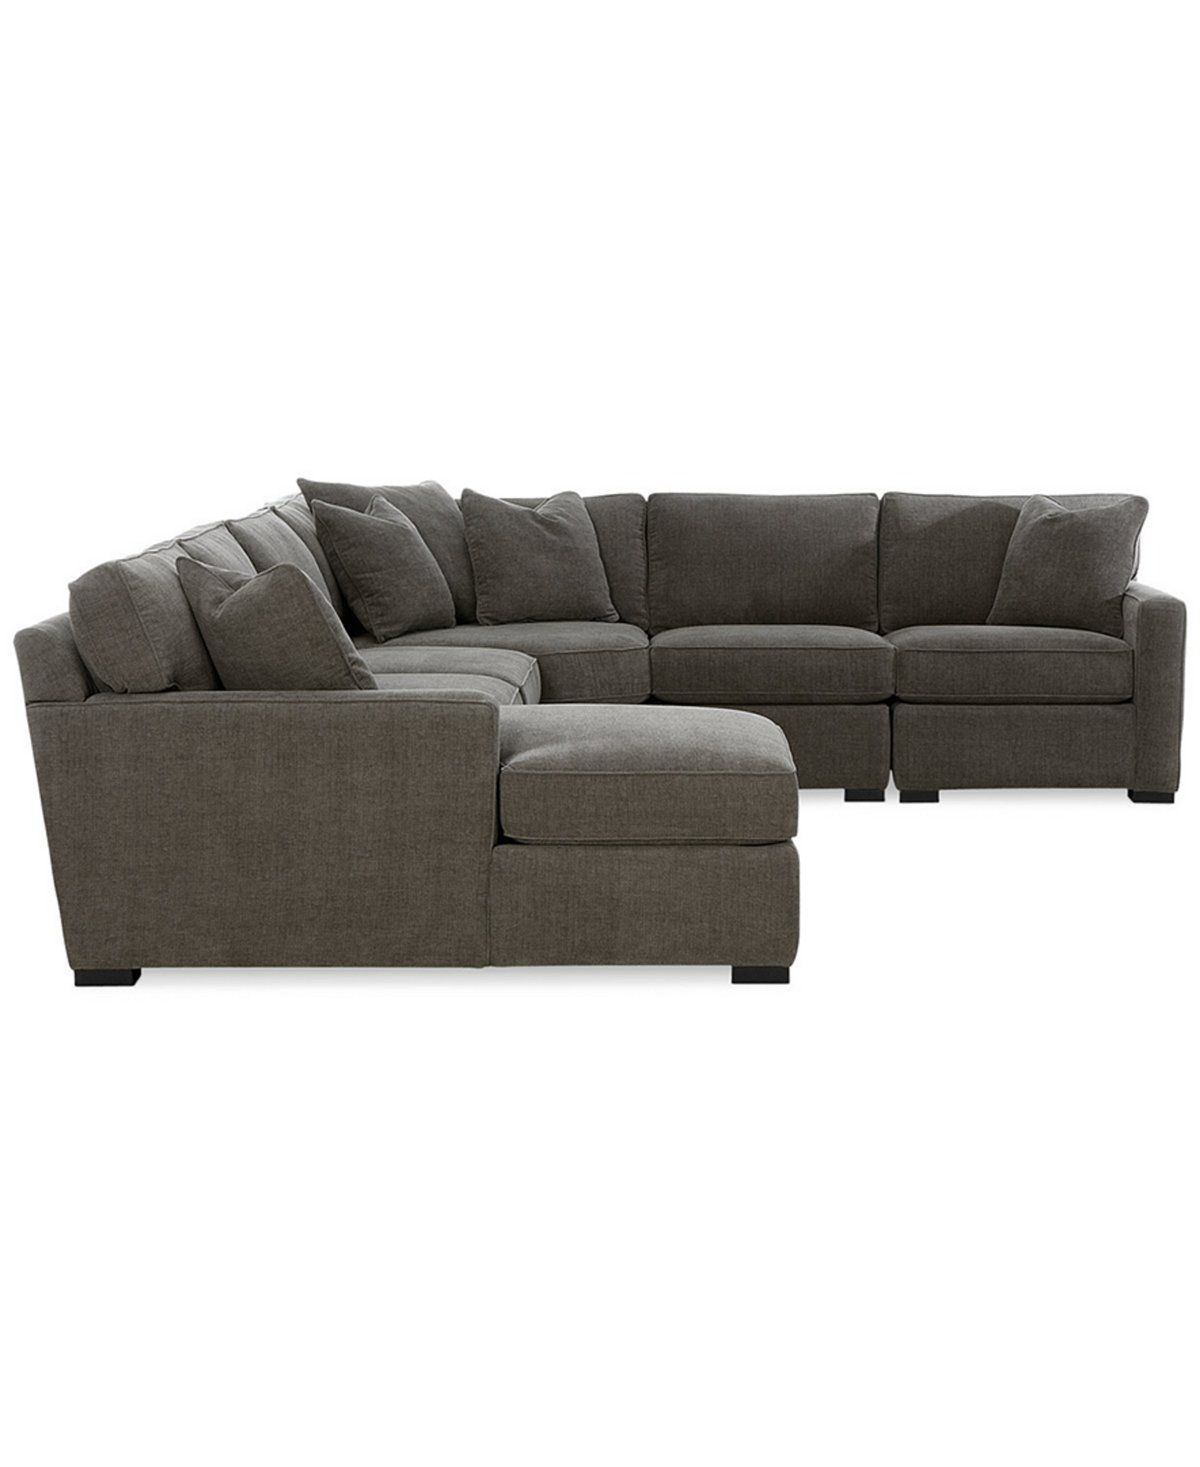 Good Radley 5 Piece Fabric Chaise Sectional Sofa, Created For Macyu0027s   Sectional  Sofas   Furniture   Macyu0027s